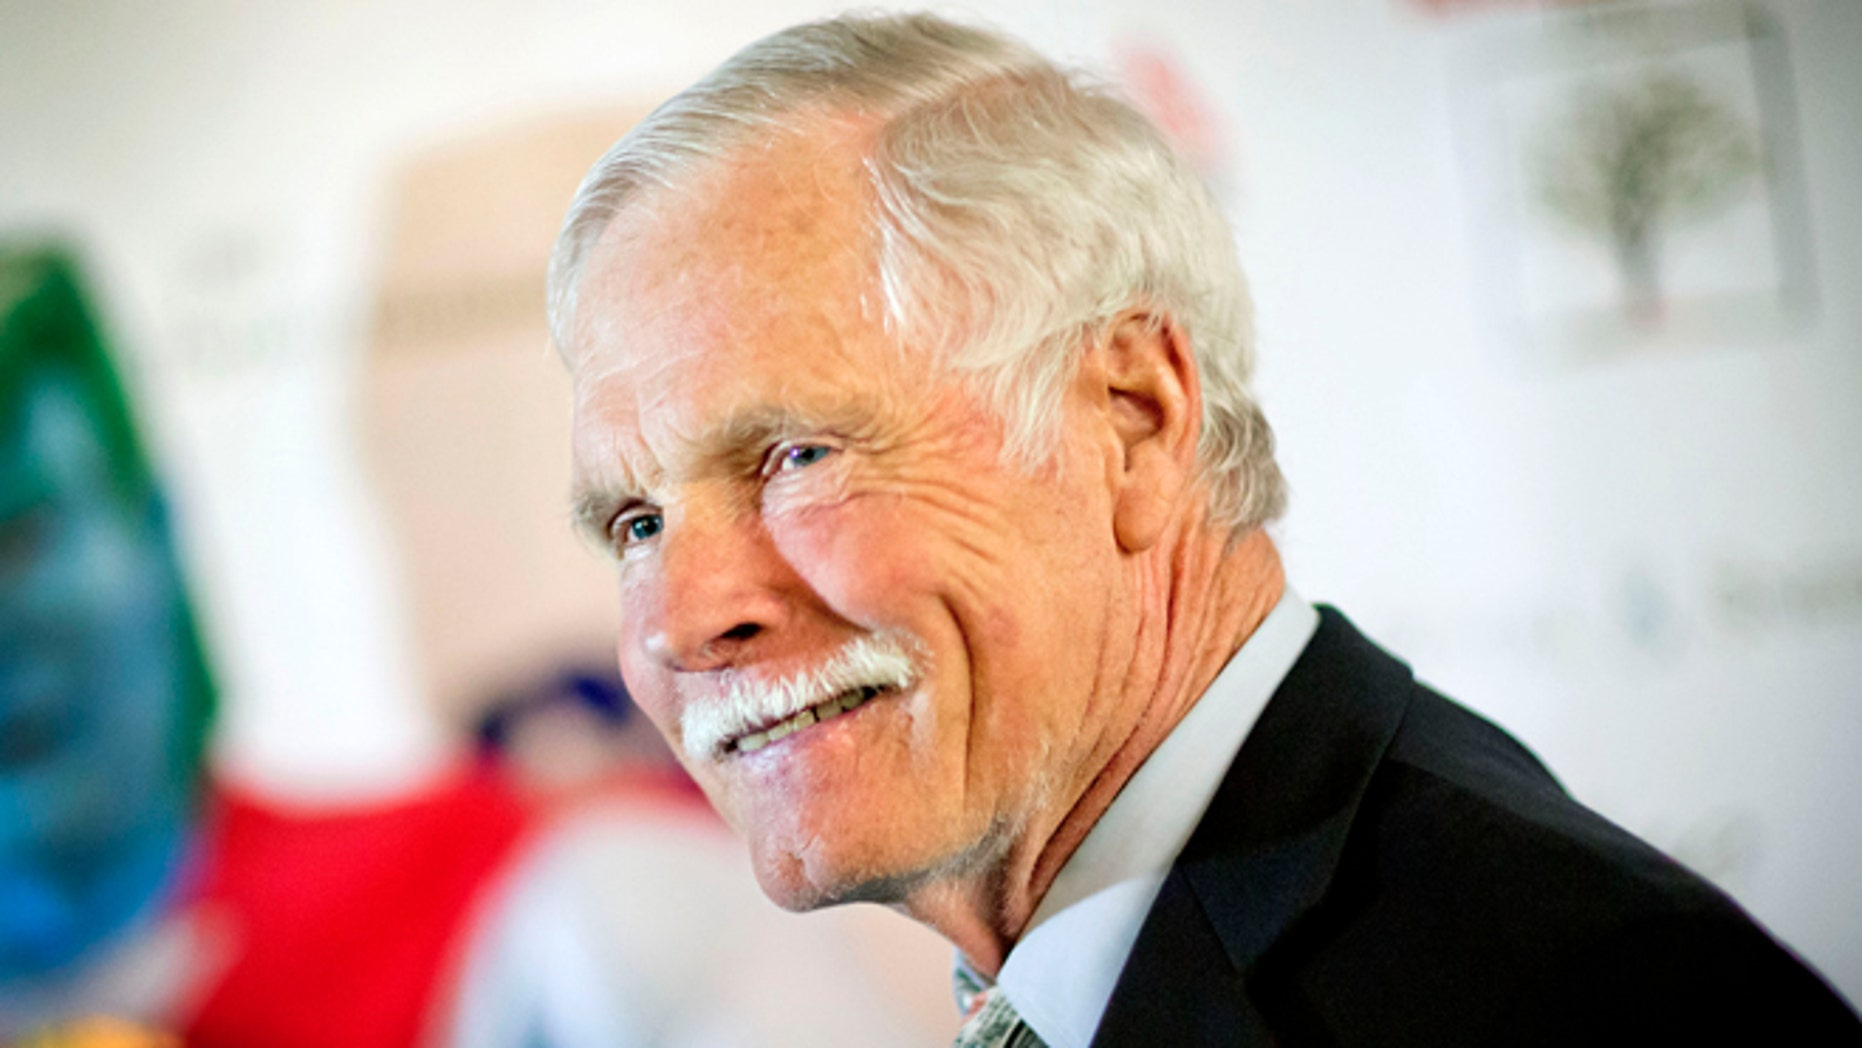 """FILE - In this Friday, Dec. 6, 2013 file photo, American media mogul Ted Turner is photographed on the red carpet at the Captain Planet Foundation benefit gala in Atlanta. Turner Enterprises spokesman Phillip Evans in Atlanta said the CNN founder was hospitalized in South America and that """"no further details will be provided."""" CNN's news desk, tweeted that Turner was """"under observation"""" Friday, March 7, 2014, at a hospital in Buenos Aires. (AP Photo/David Goldman, File)"""